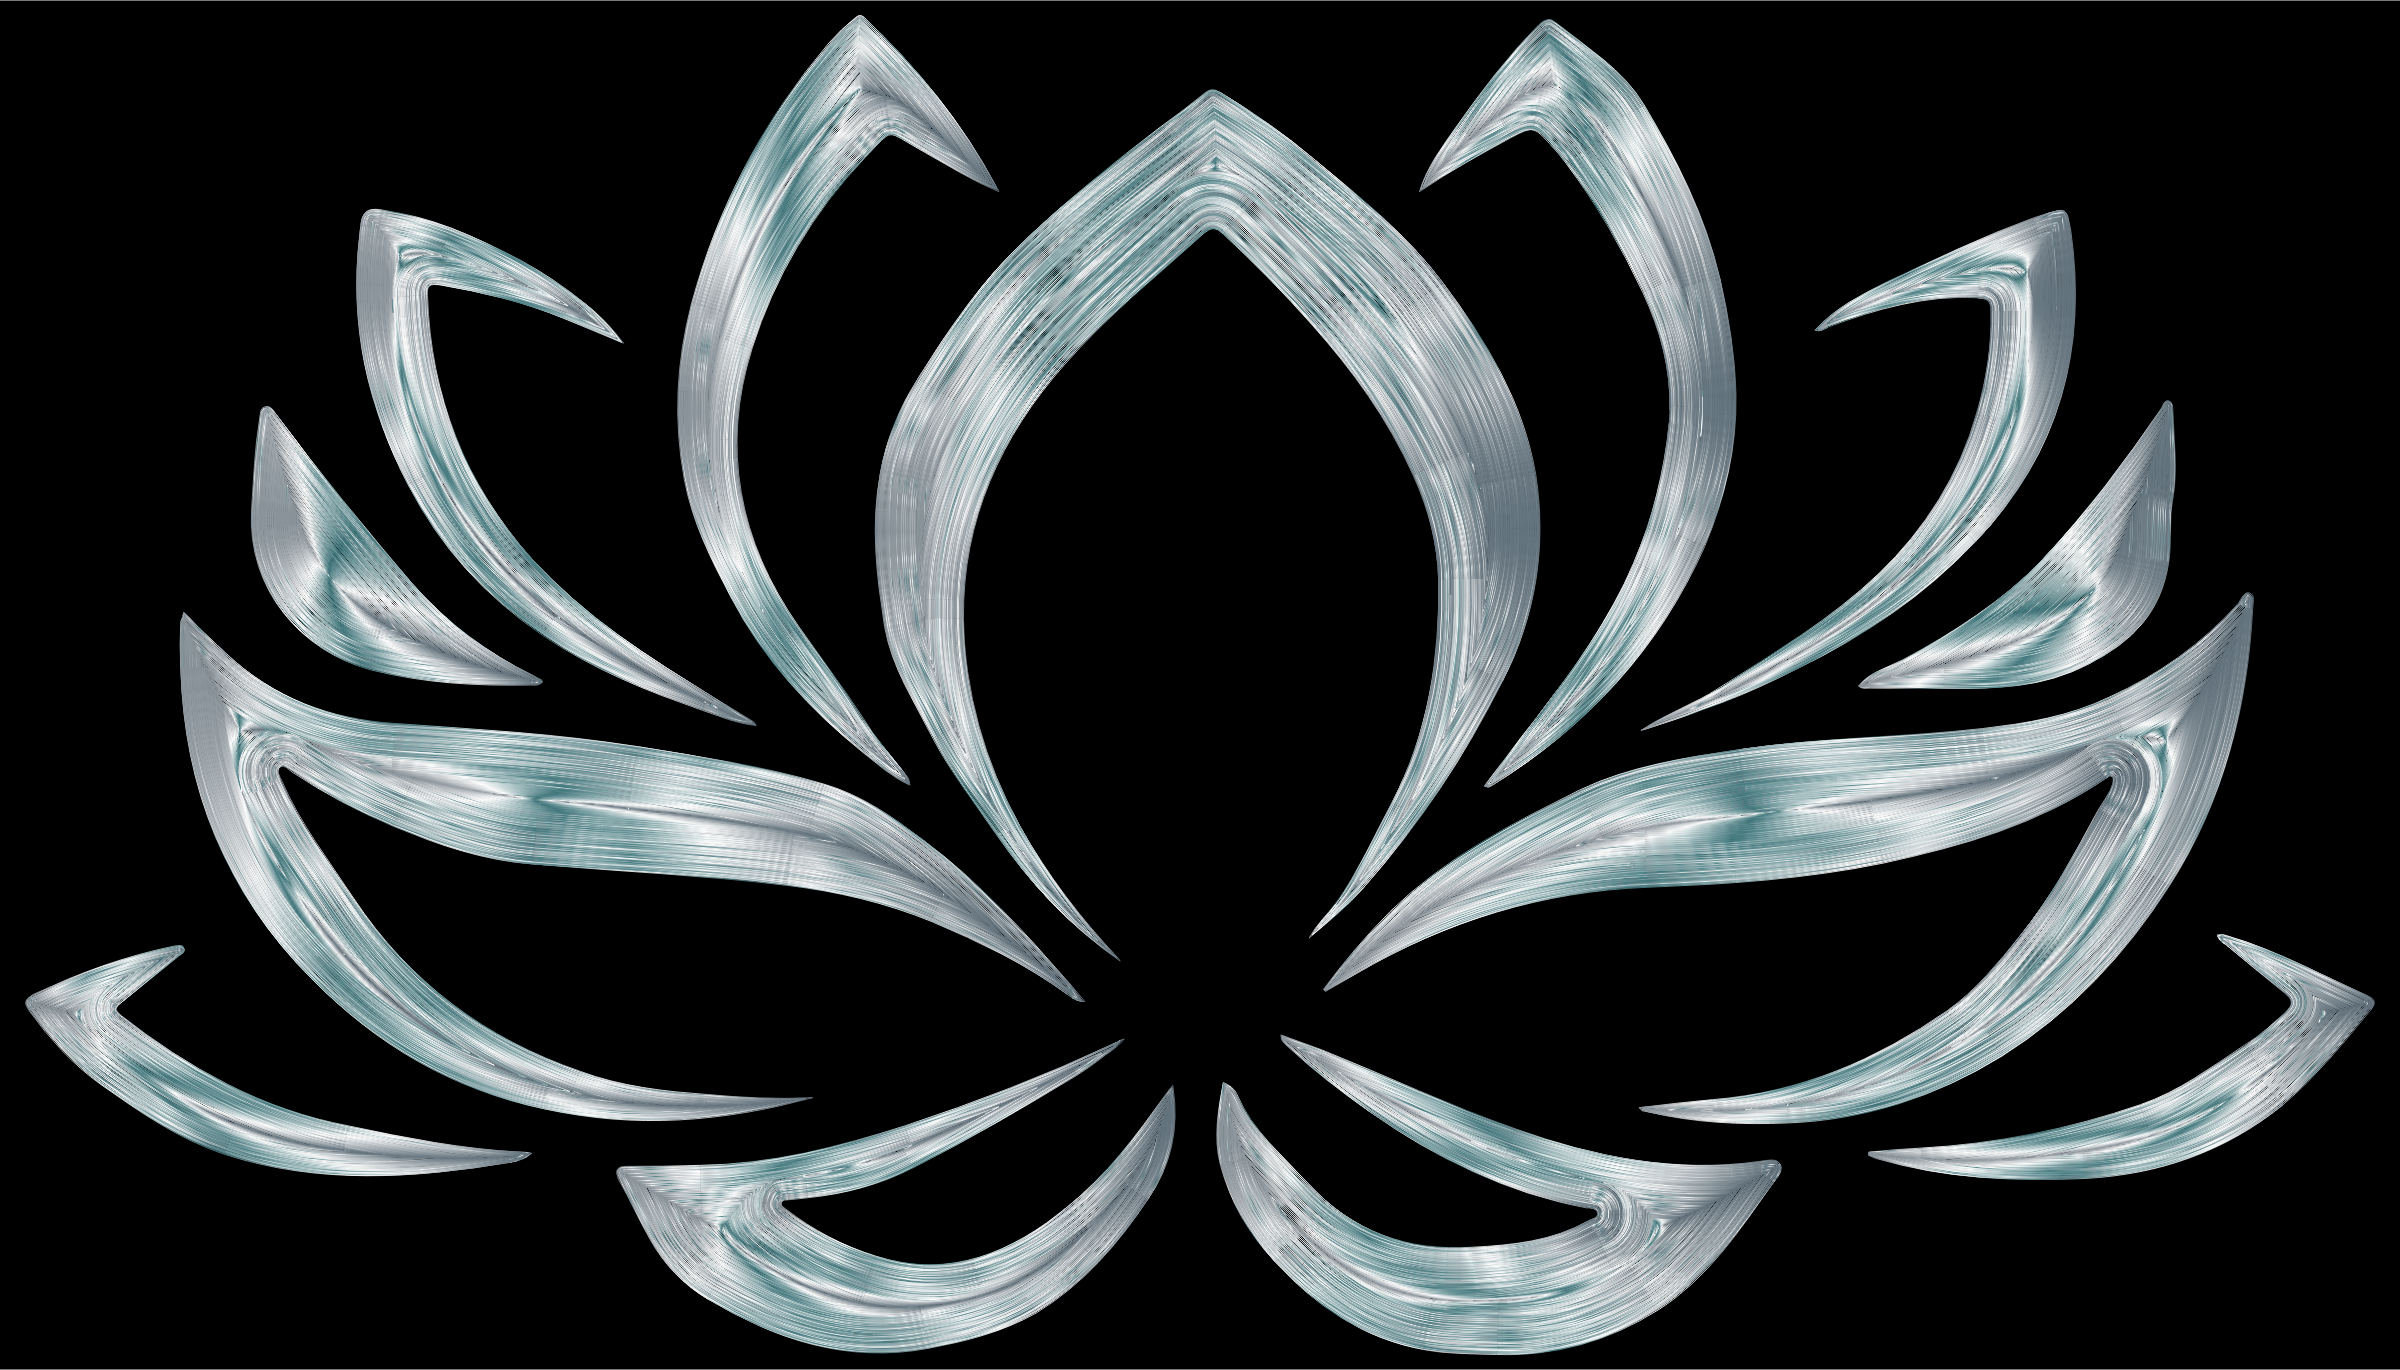 Silverized Lotus Flower by GDJ